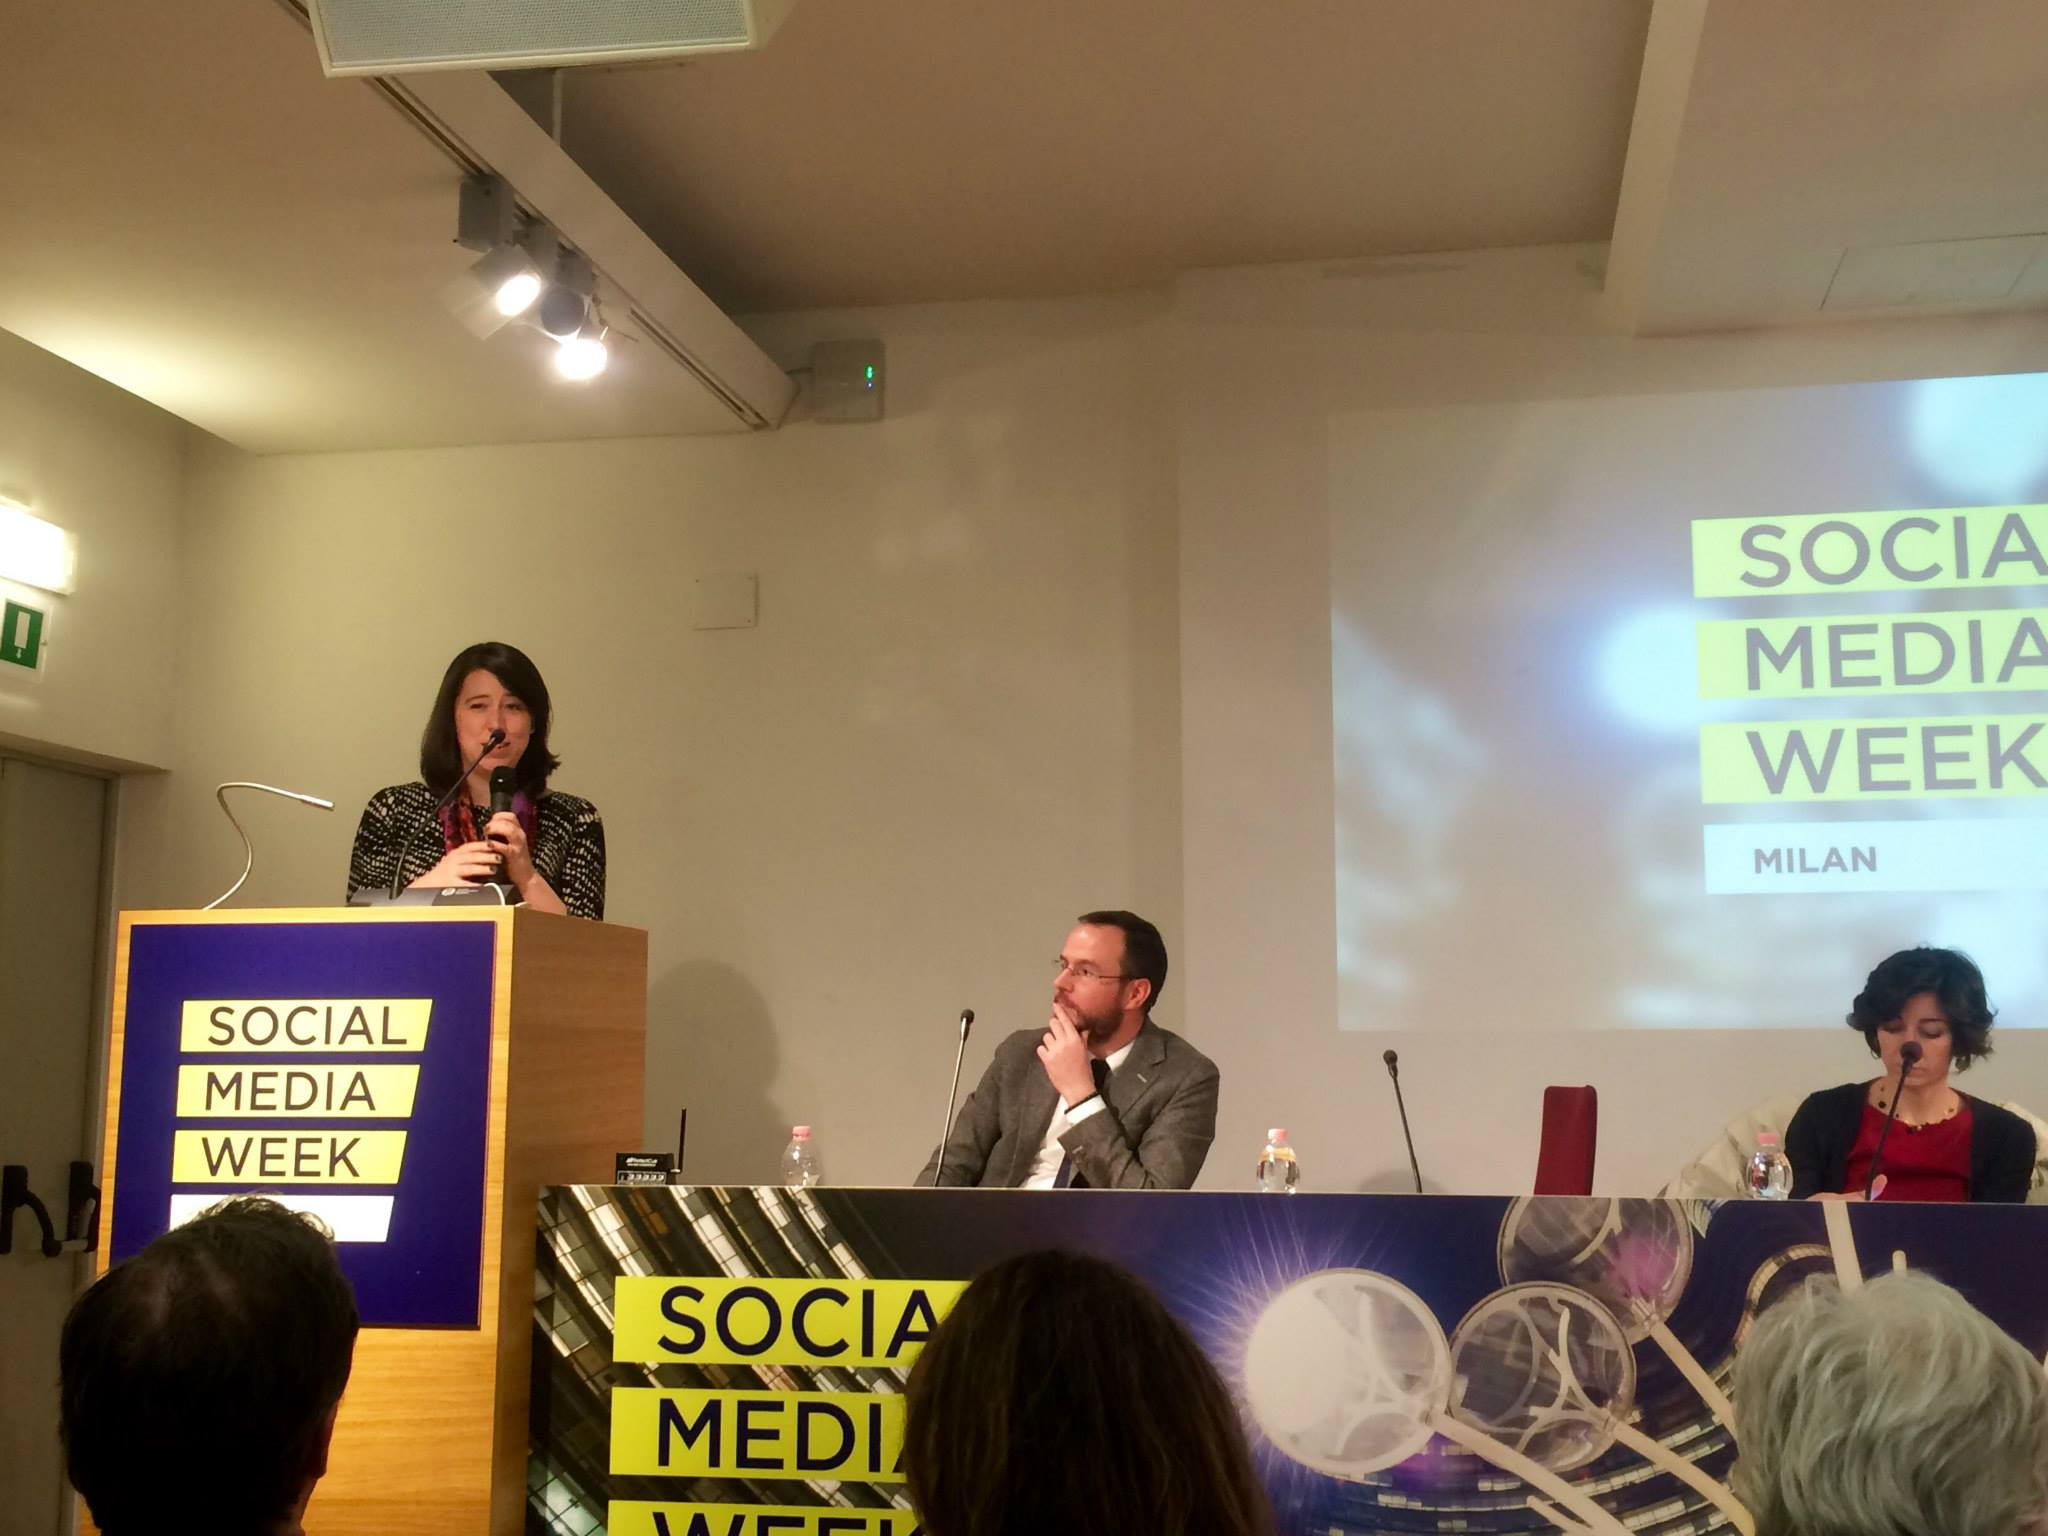 social_media_week_milano_politica